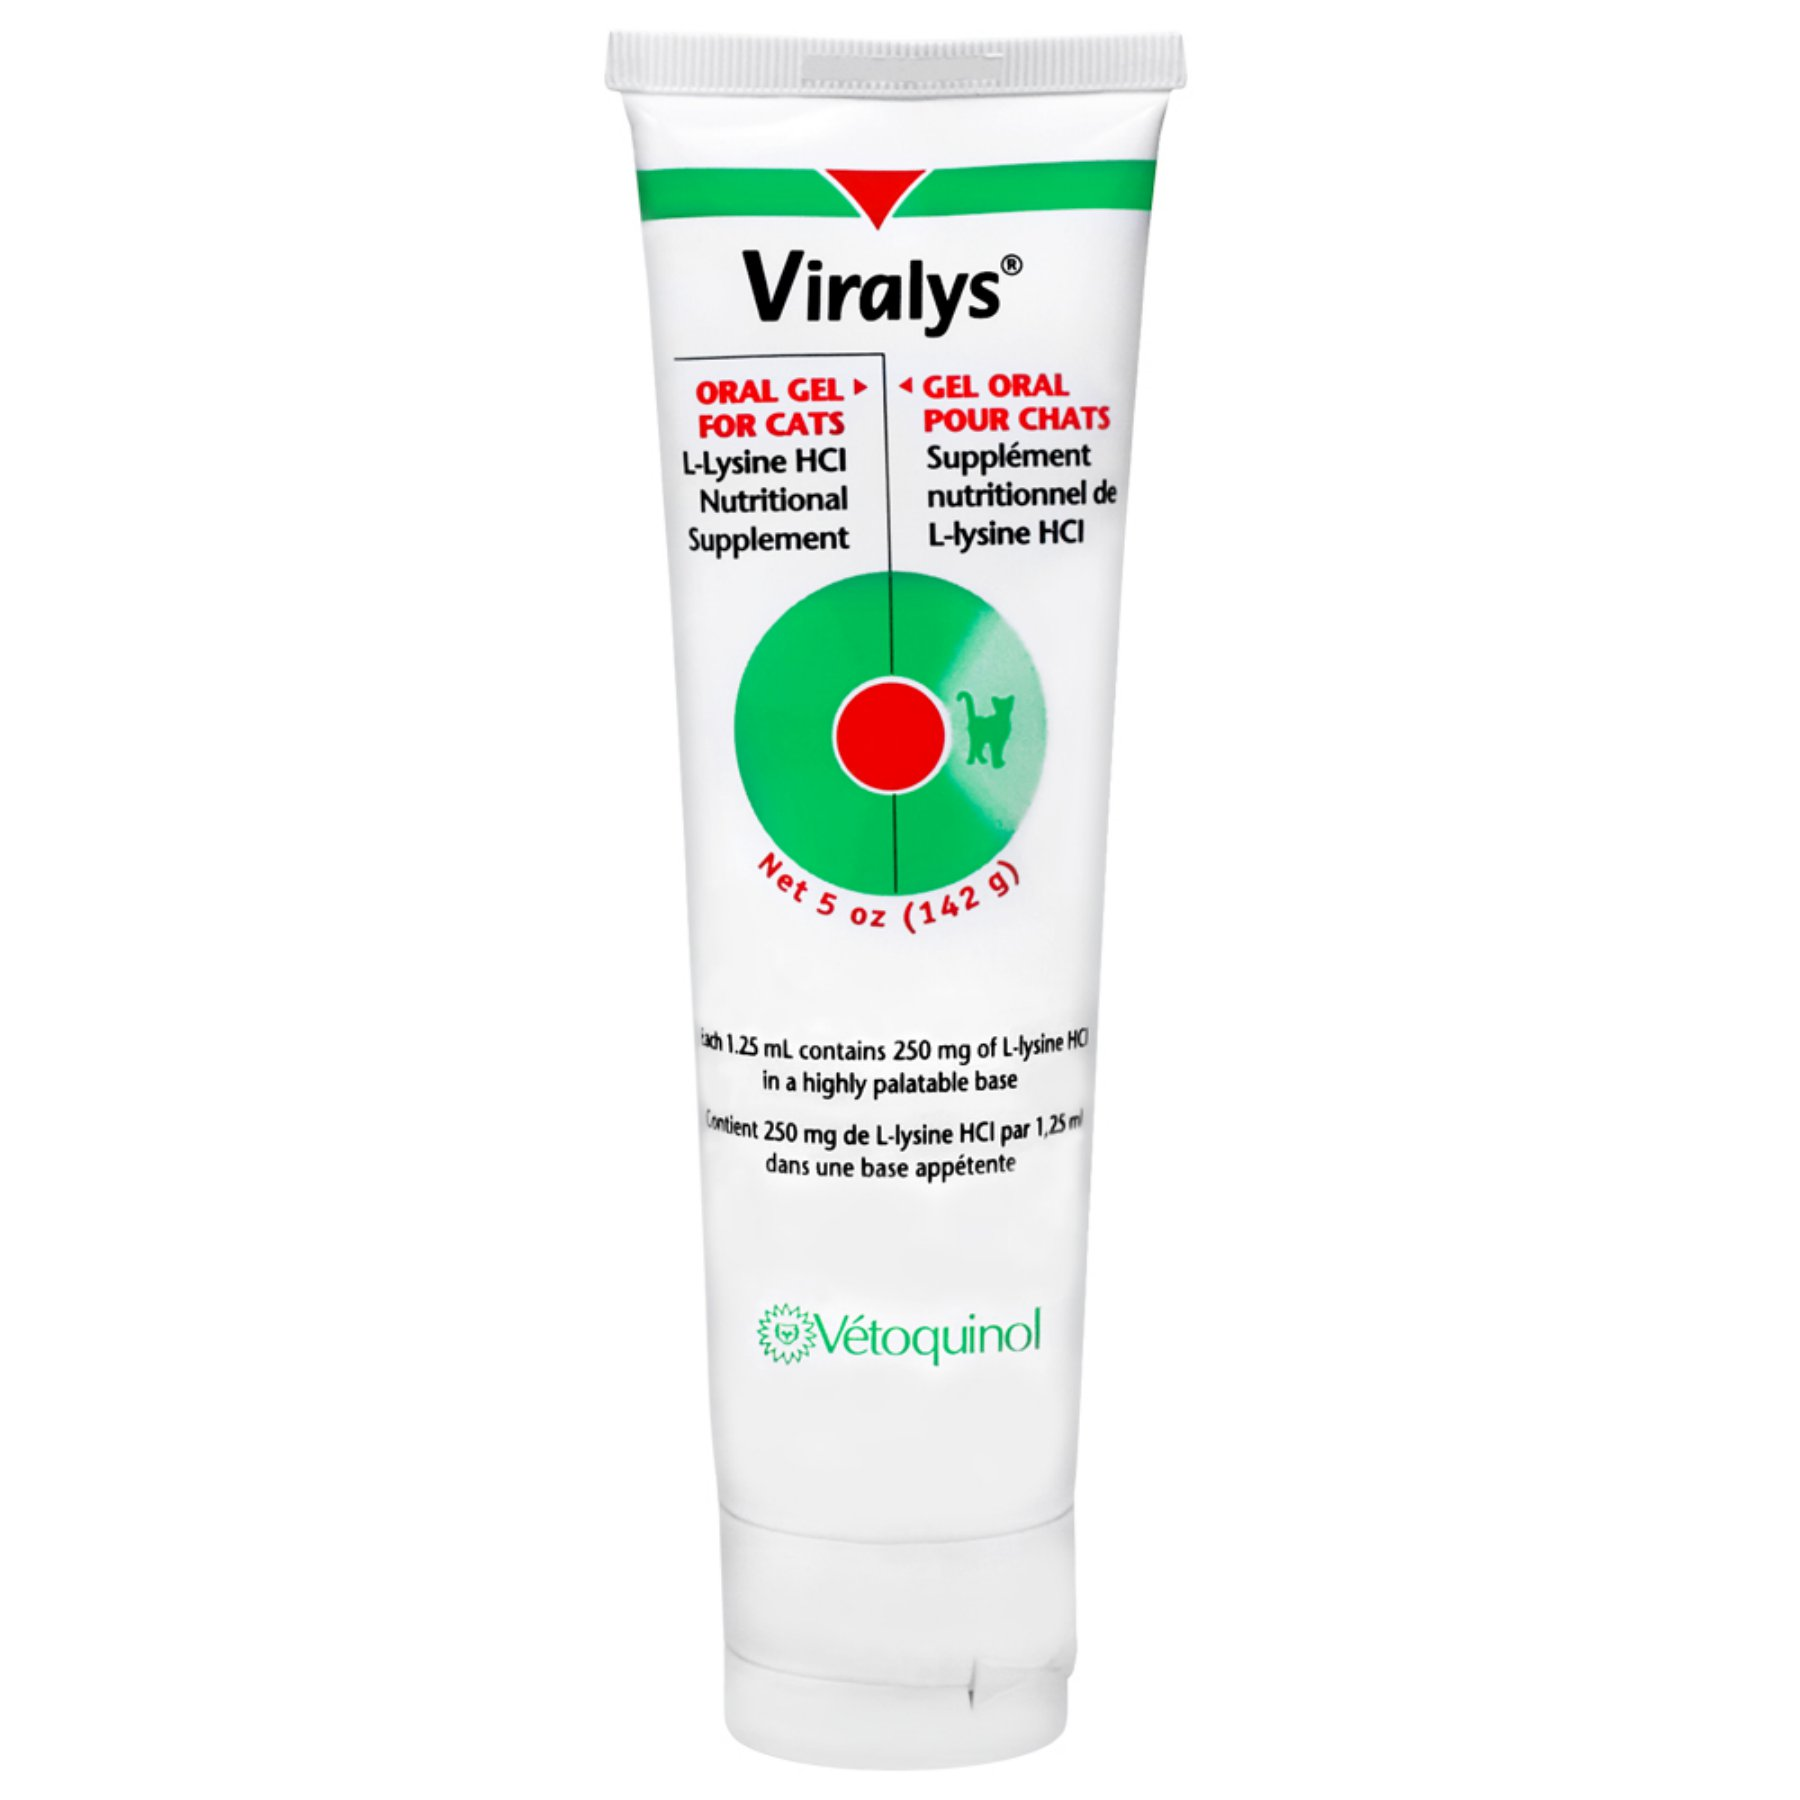 Vetoquinol Viralys Shedding Relief Oral Gel For Cats Cats Pet